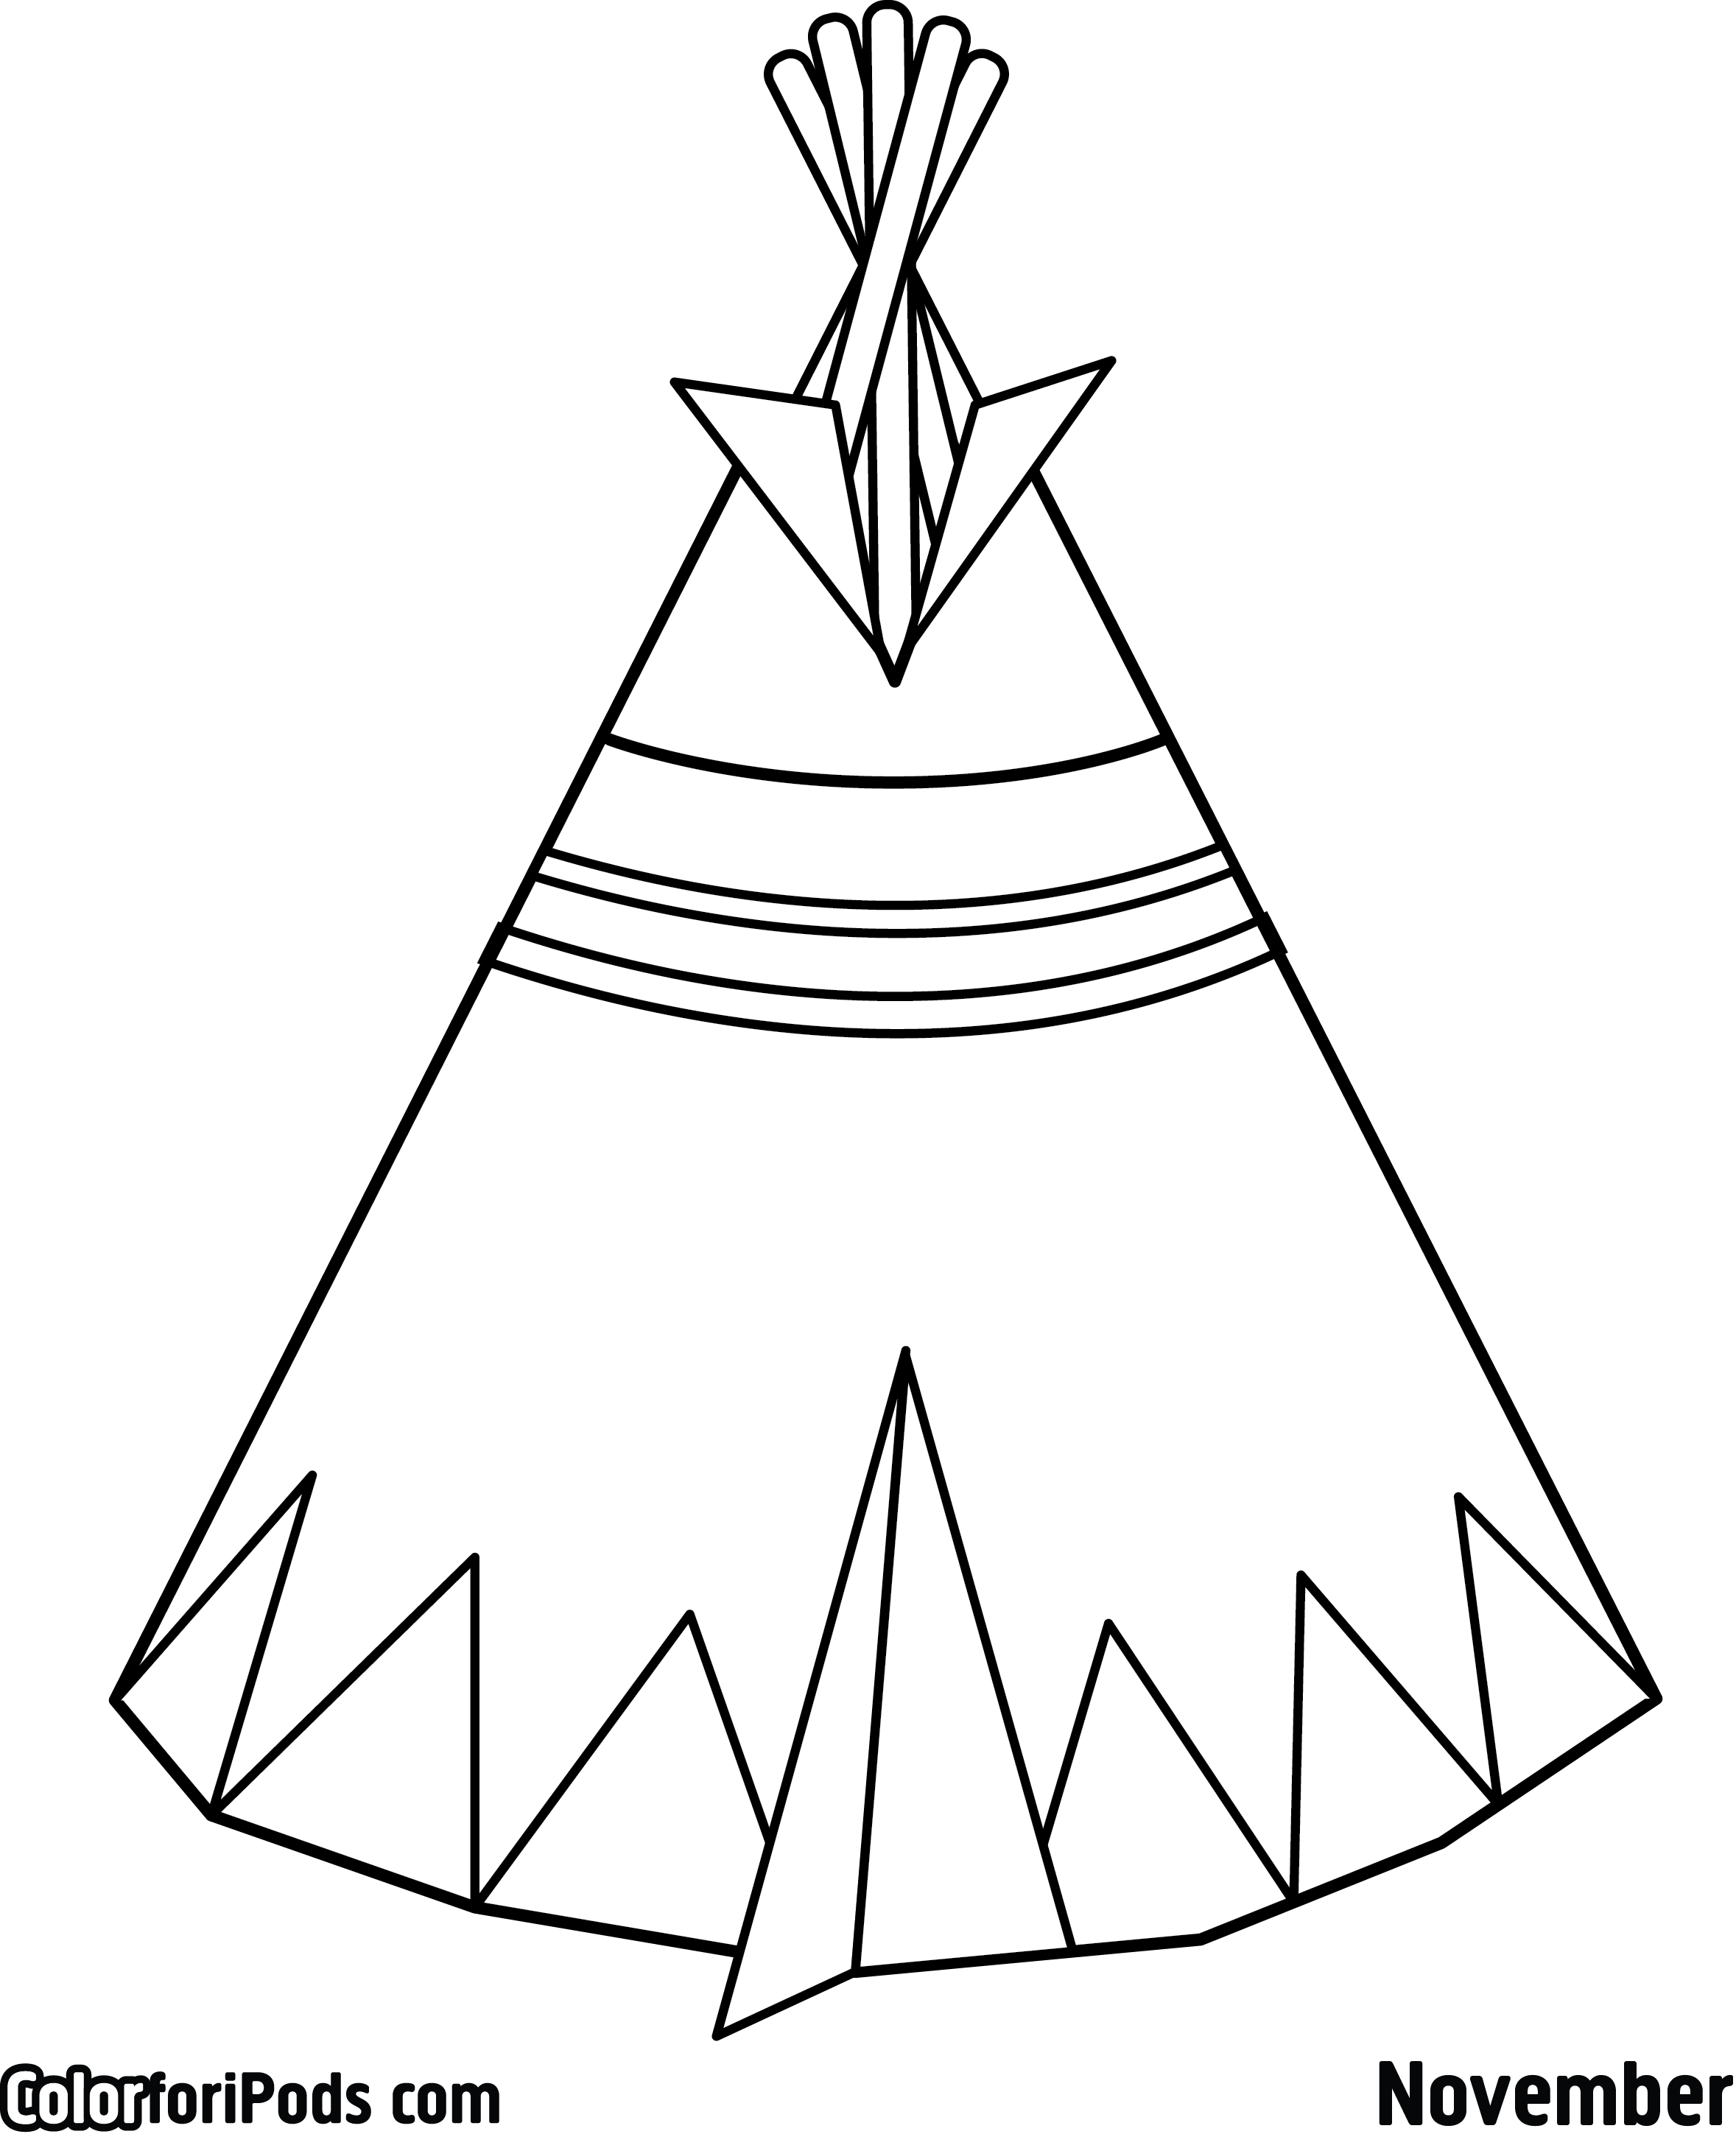 Superb Tee Pee Coloring Pages Printable With Native American Captain America Coloring Pages Coloring Pages Inspirational Coloring Pages